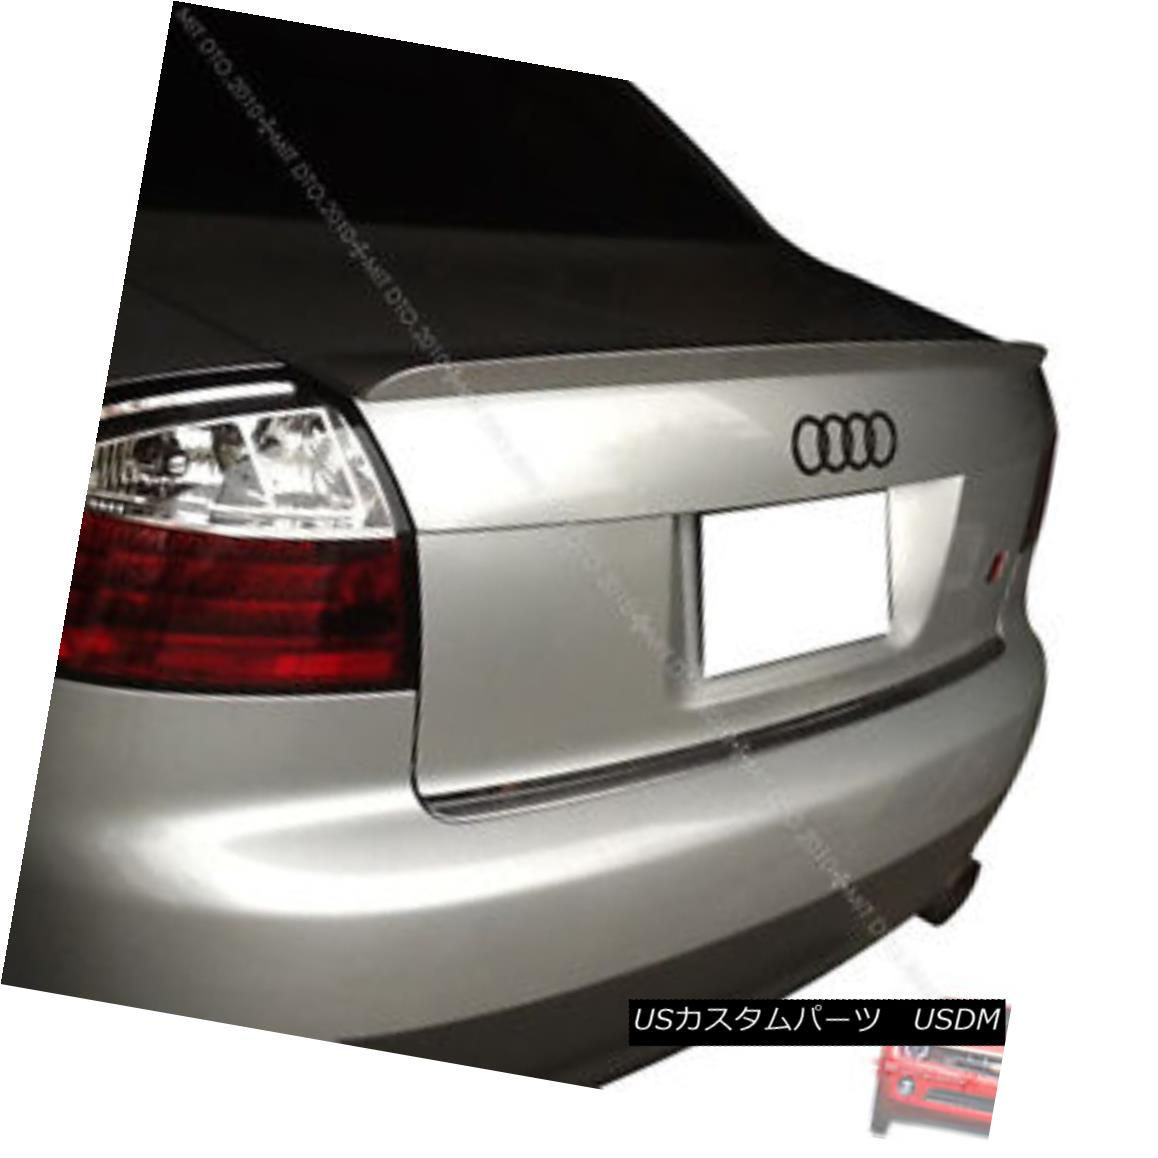 エアロパーツ Painted 02-05 AUDI A4 B6 Rear Trunk Spoiler Wing NEW LX7Z § 塗装02-05 AUDI A4 B6リアトランクスポイラーウィングNEW LX7Z